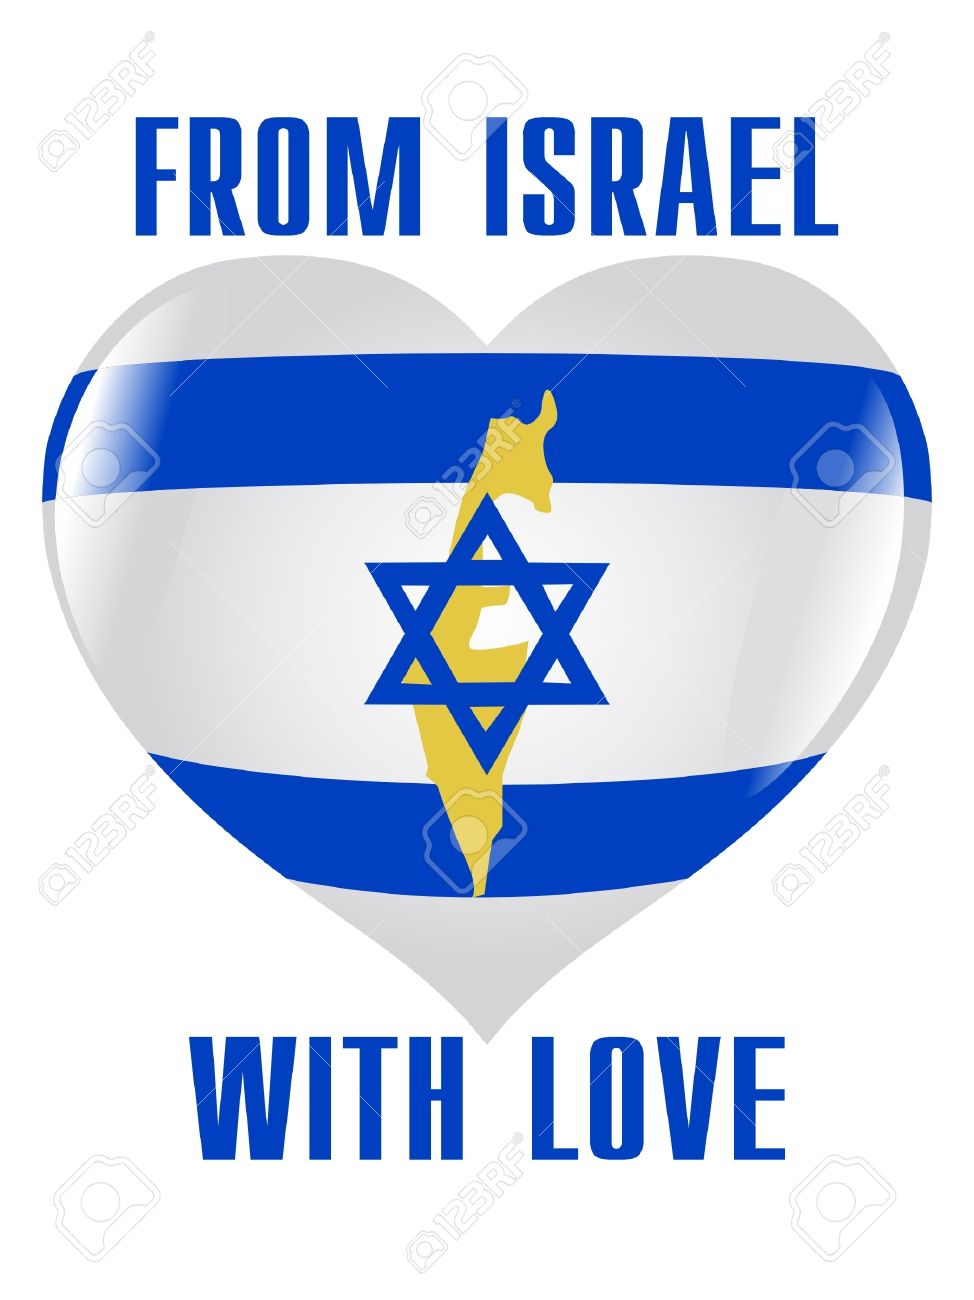 From Israel with love Stock Vector - 11899612